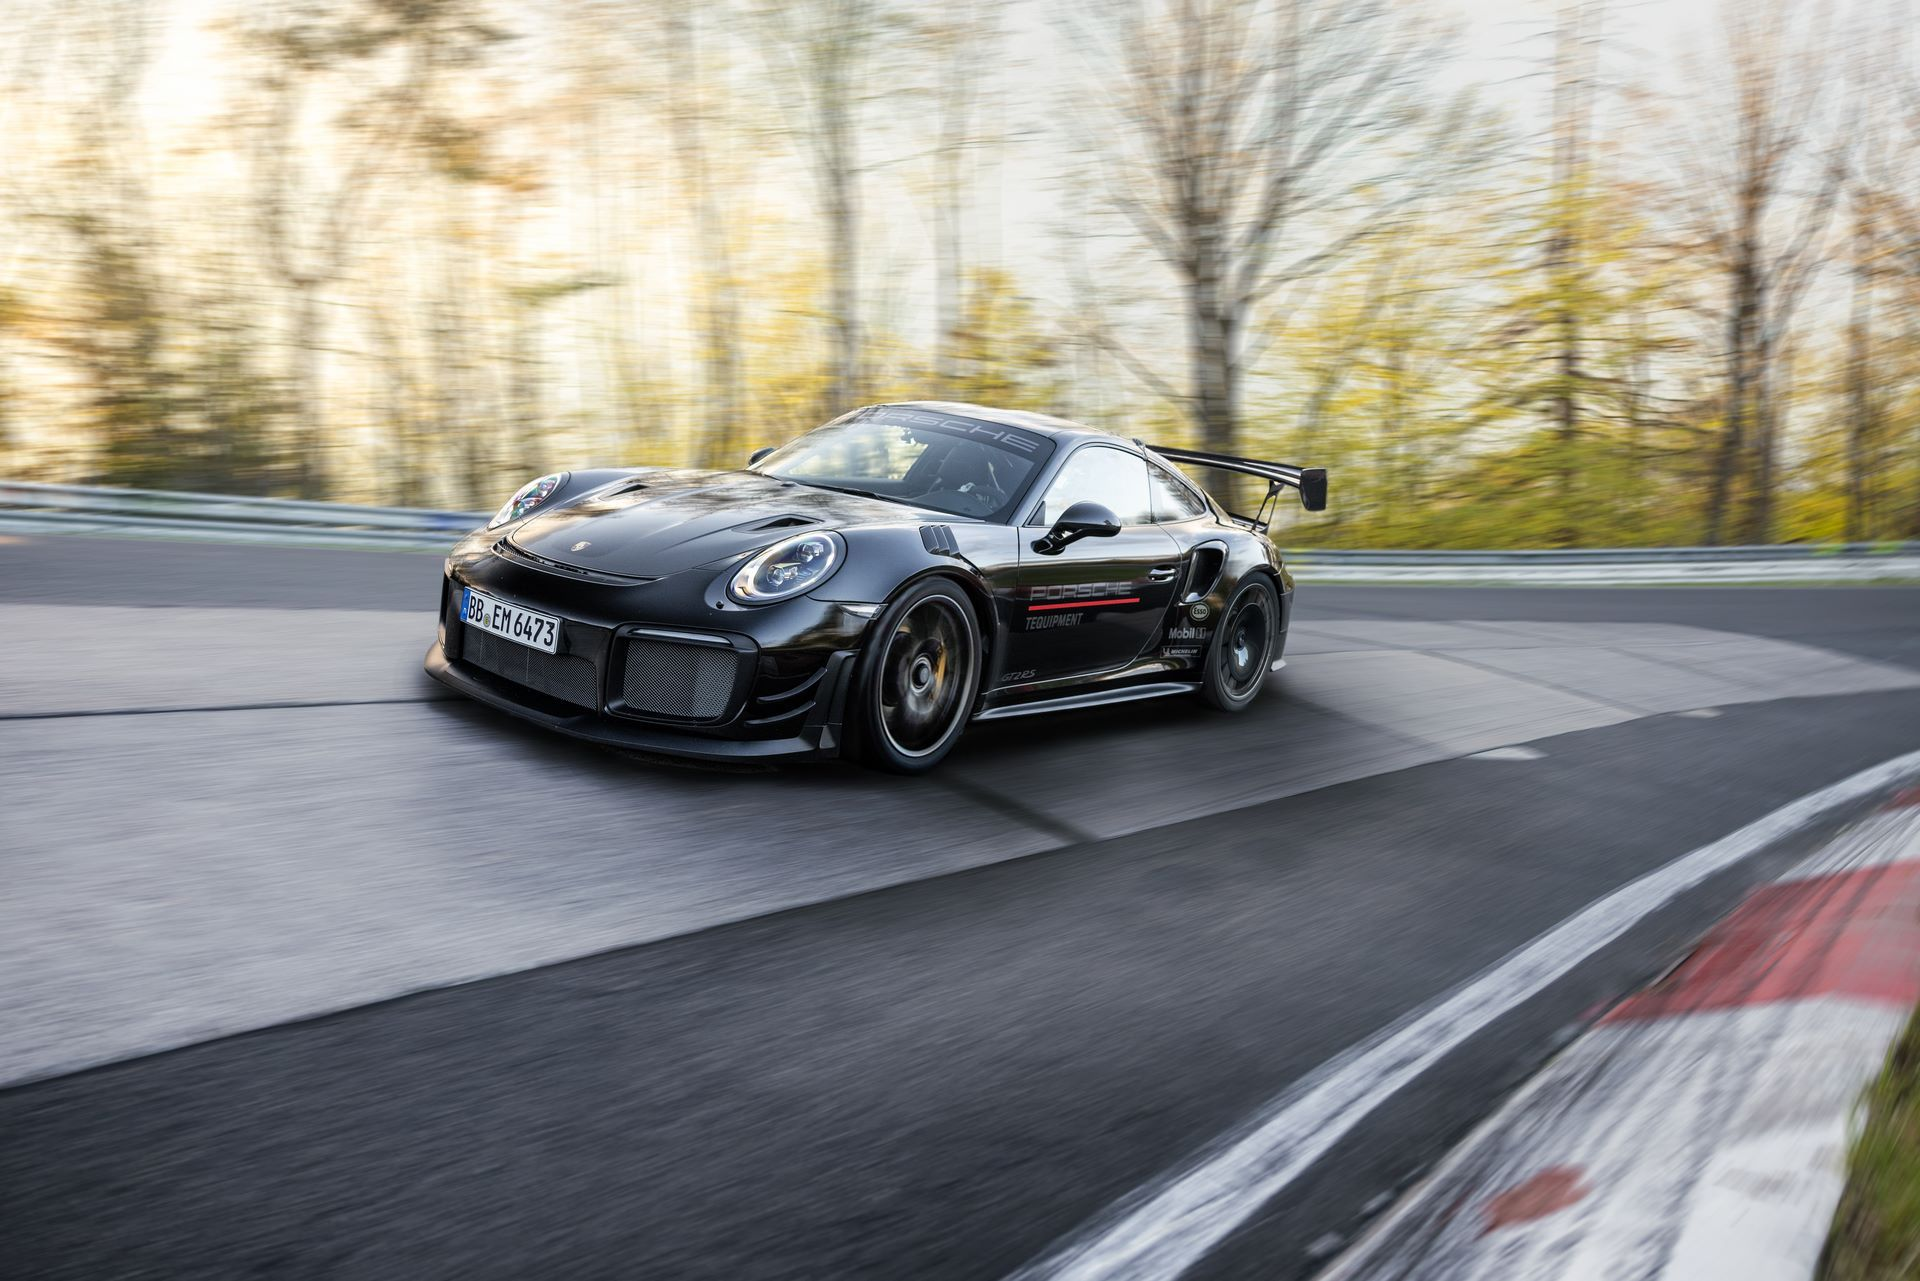 Porsche-911-GT2-RS-Manthey-Performance-Kit-Nurburgring-Record-1